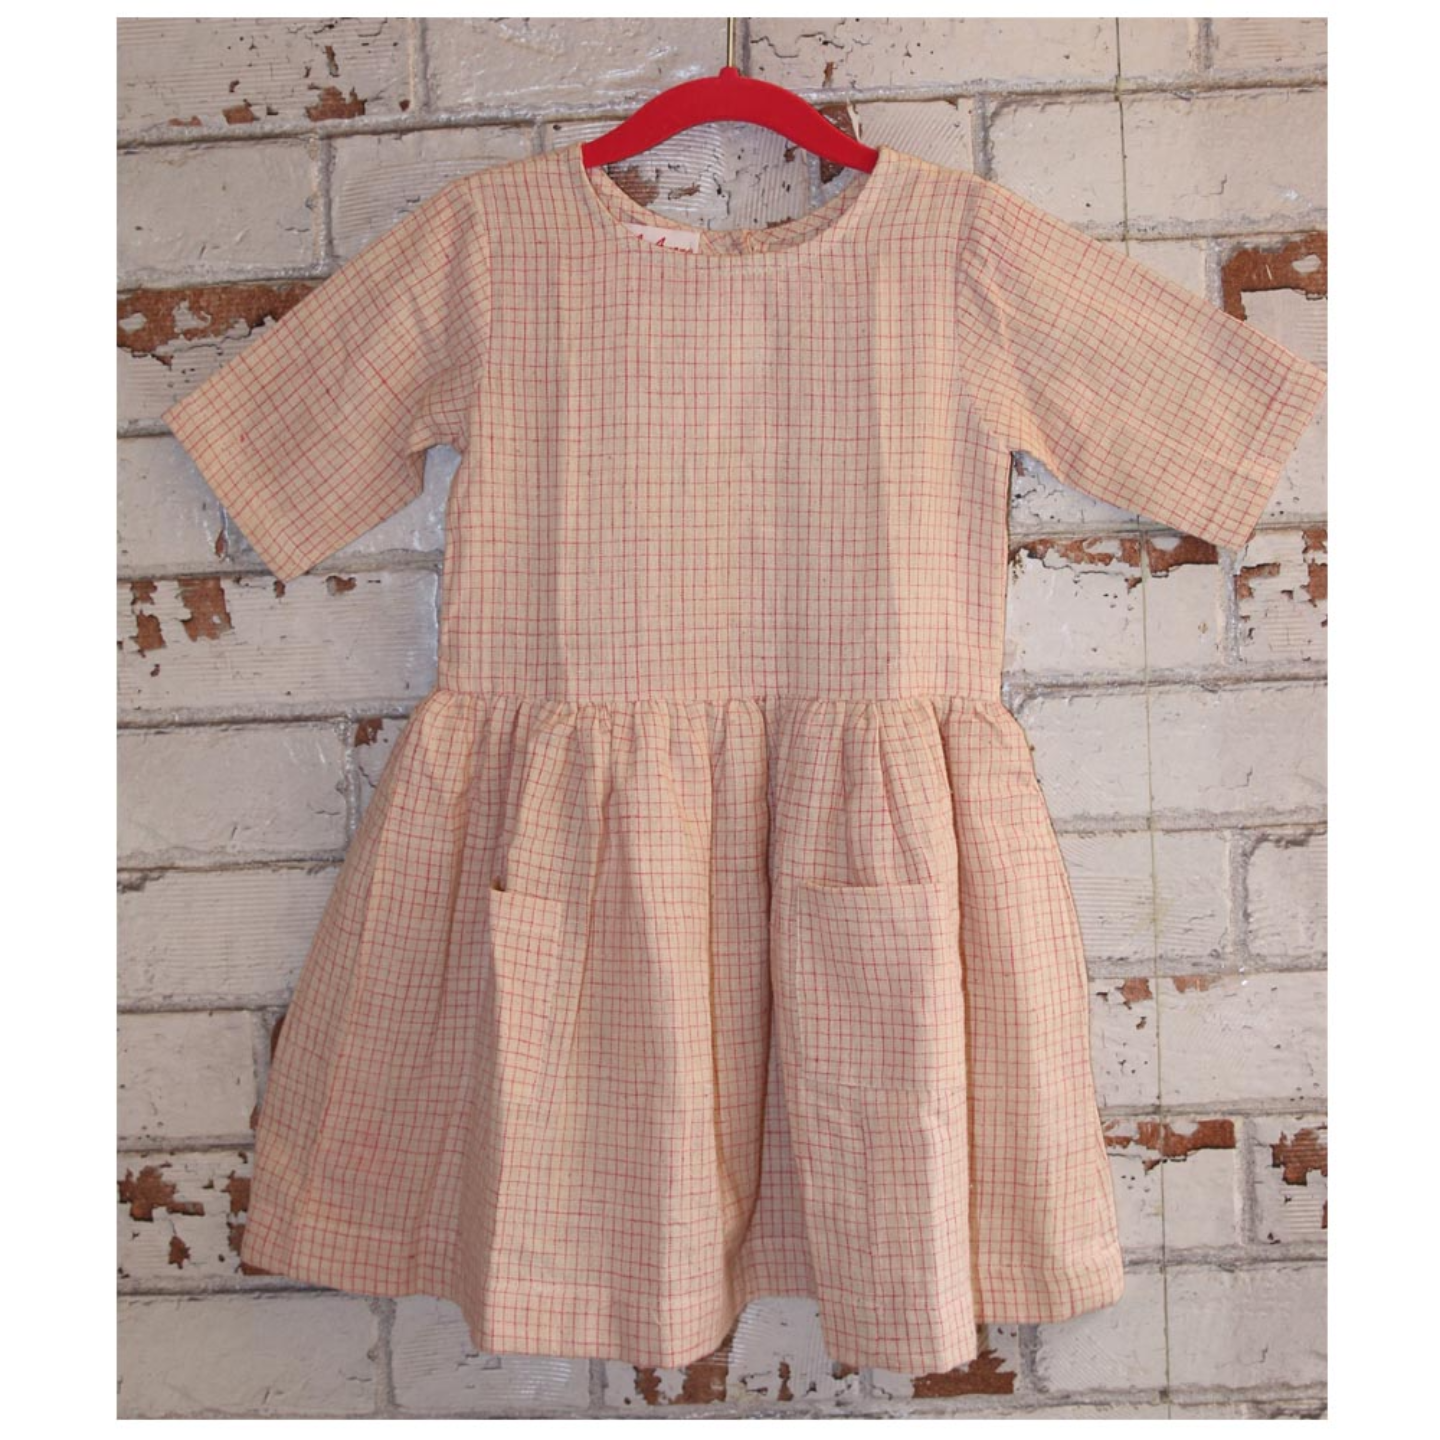 Beige Checks Handloom Organic Kala Cotton Girls Dress